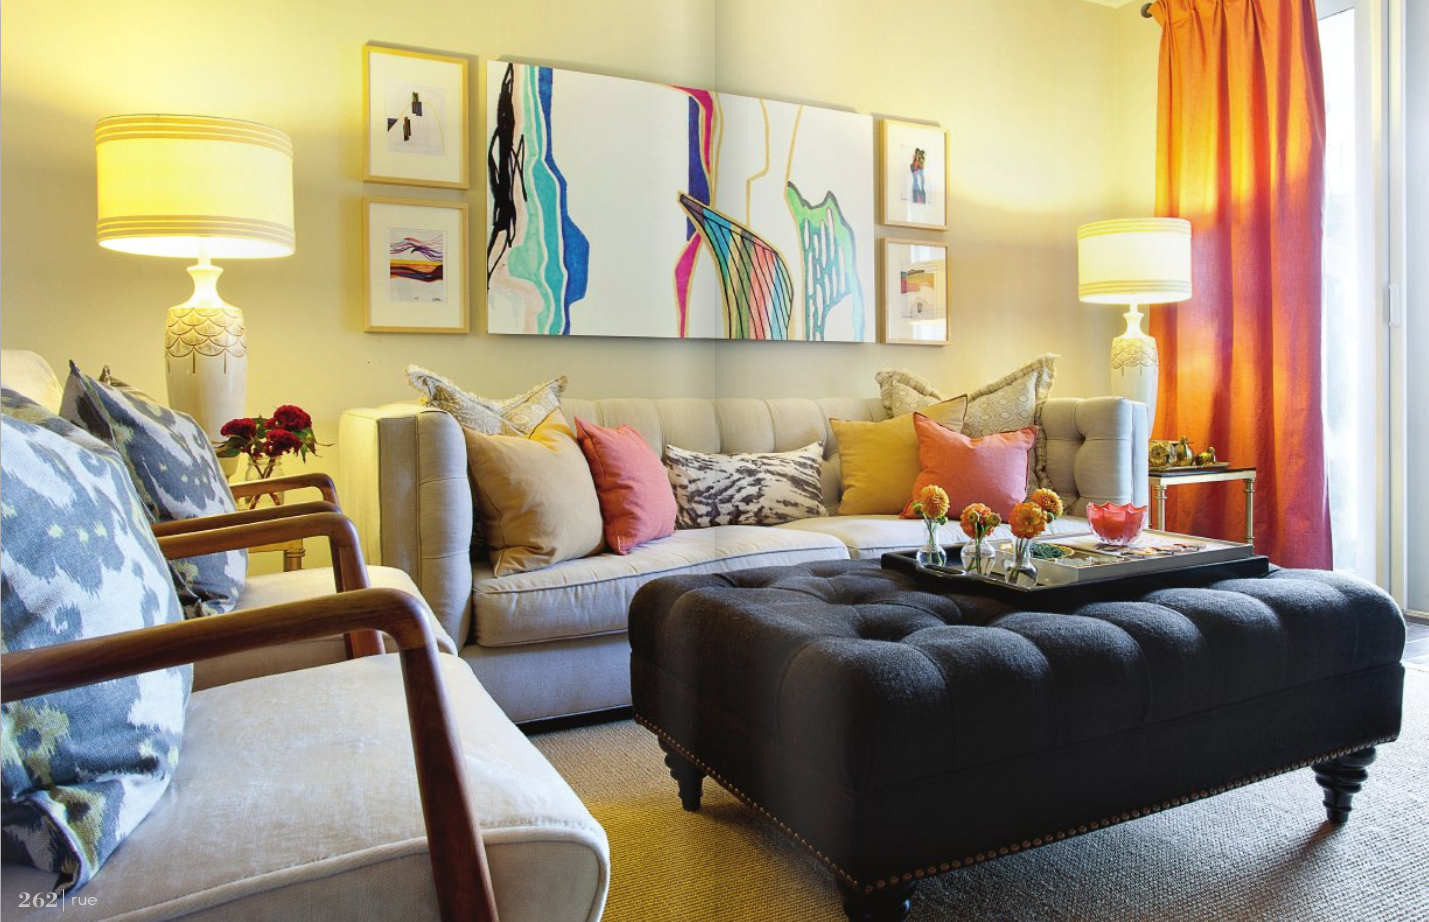 Artwork for living room ideas | Home Designs Project